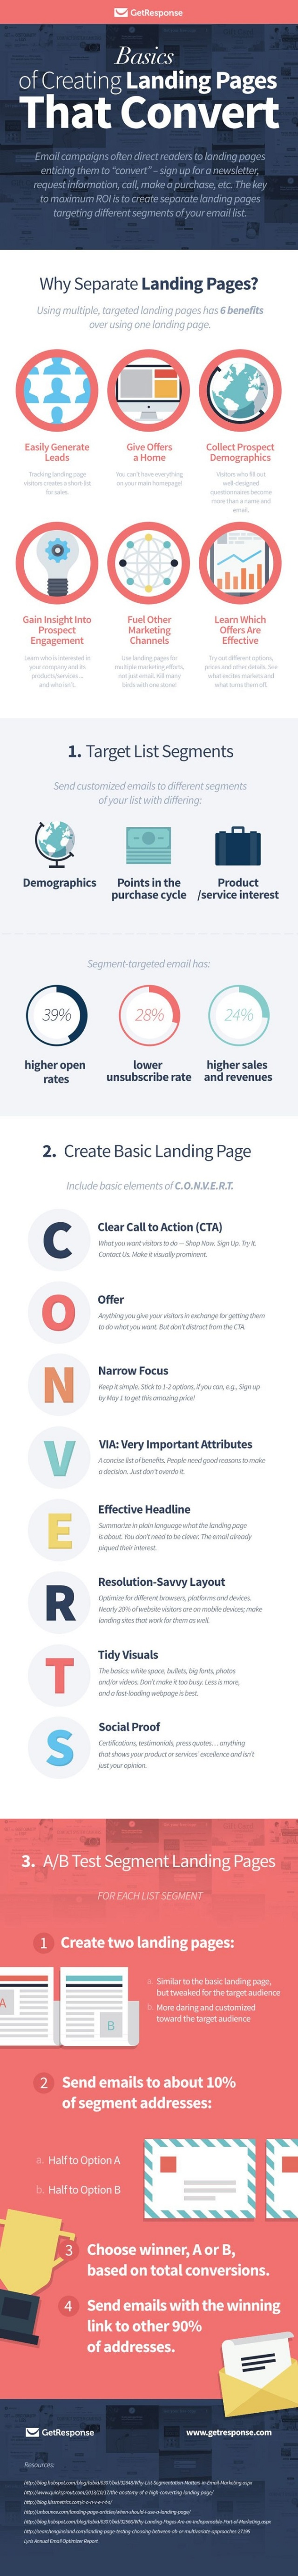 landing_page_conversion_into